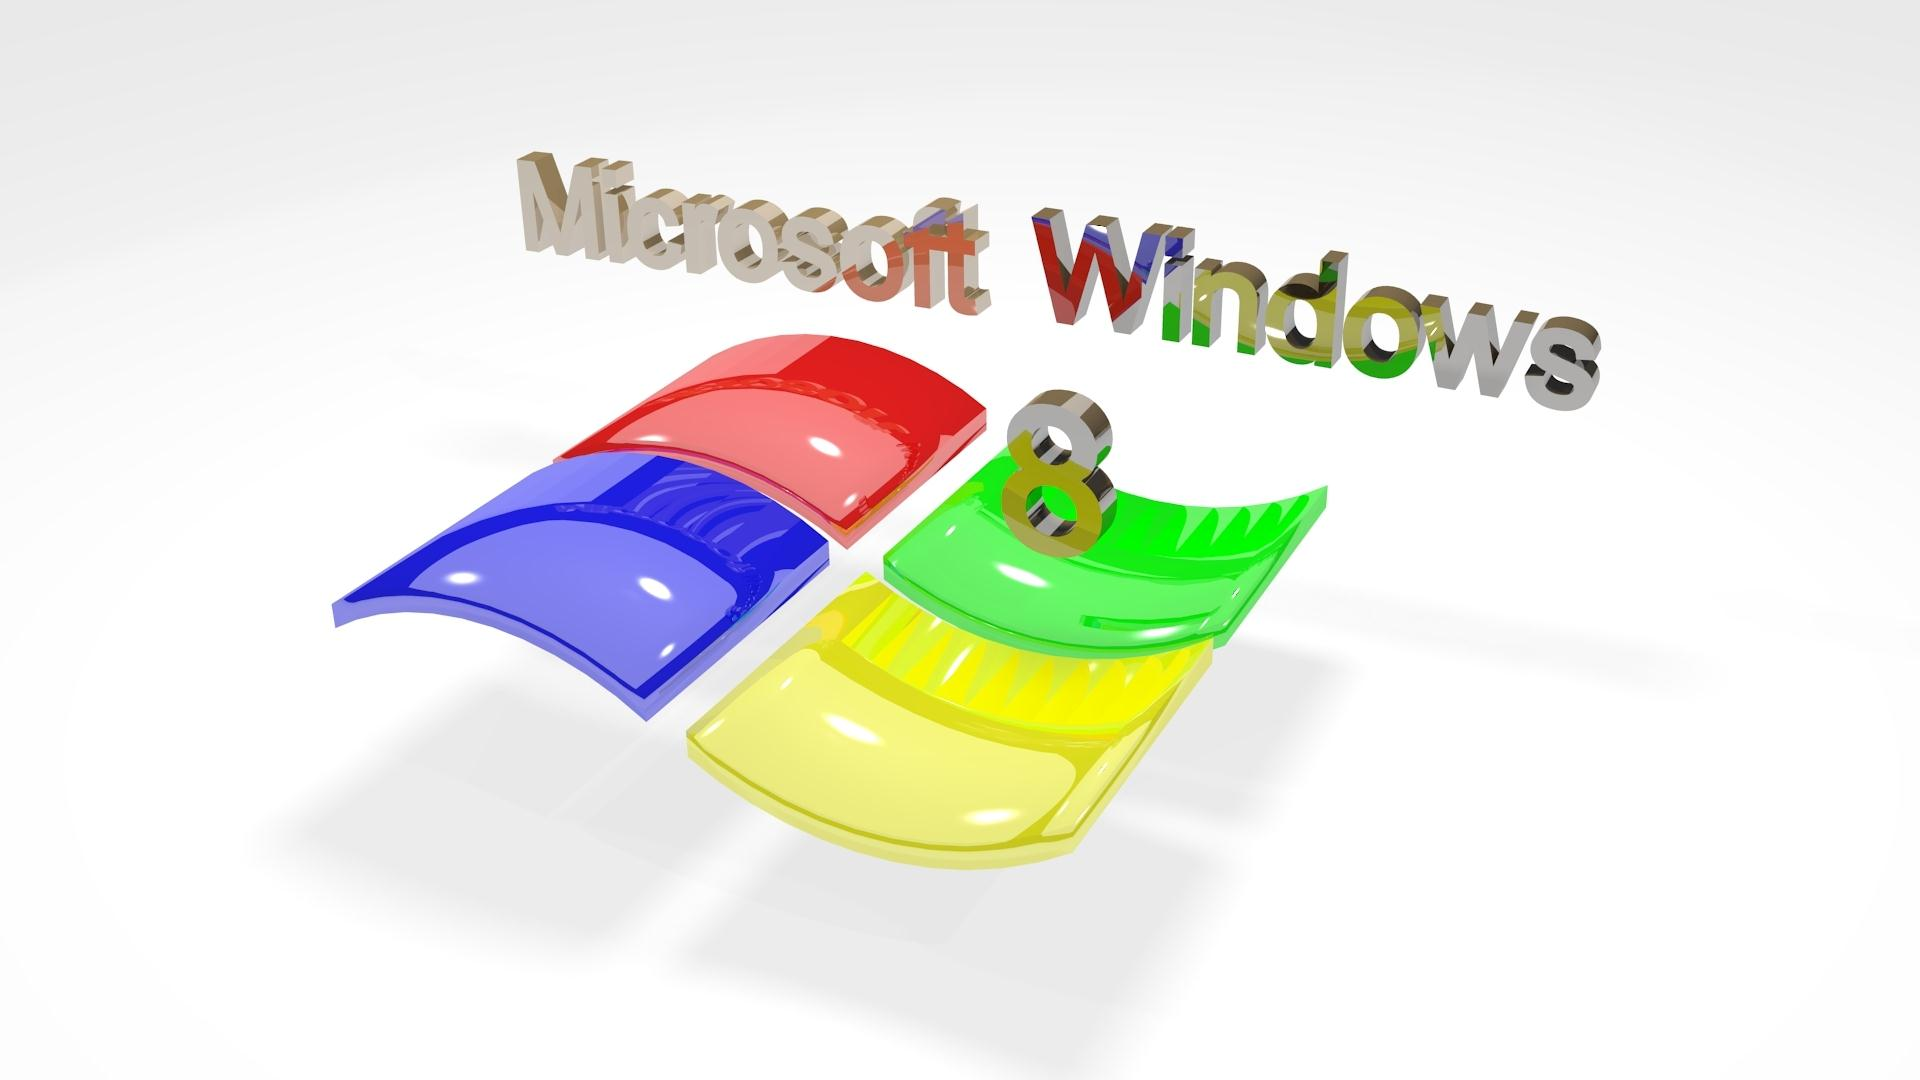 microsoft-windows-8-art-logo-hd-wallpaper | wallpaper.wiki